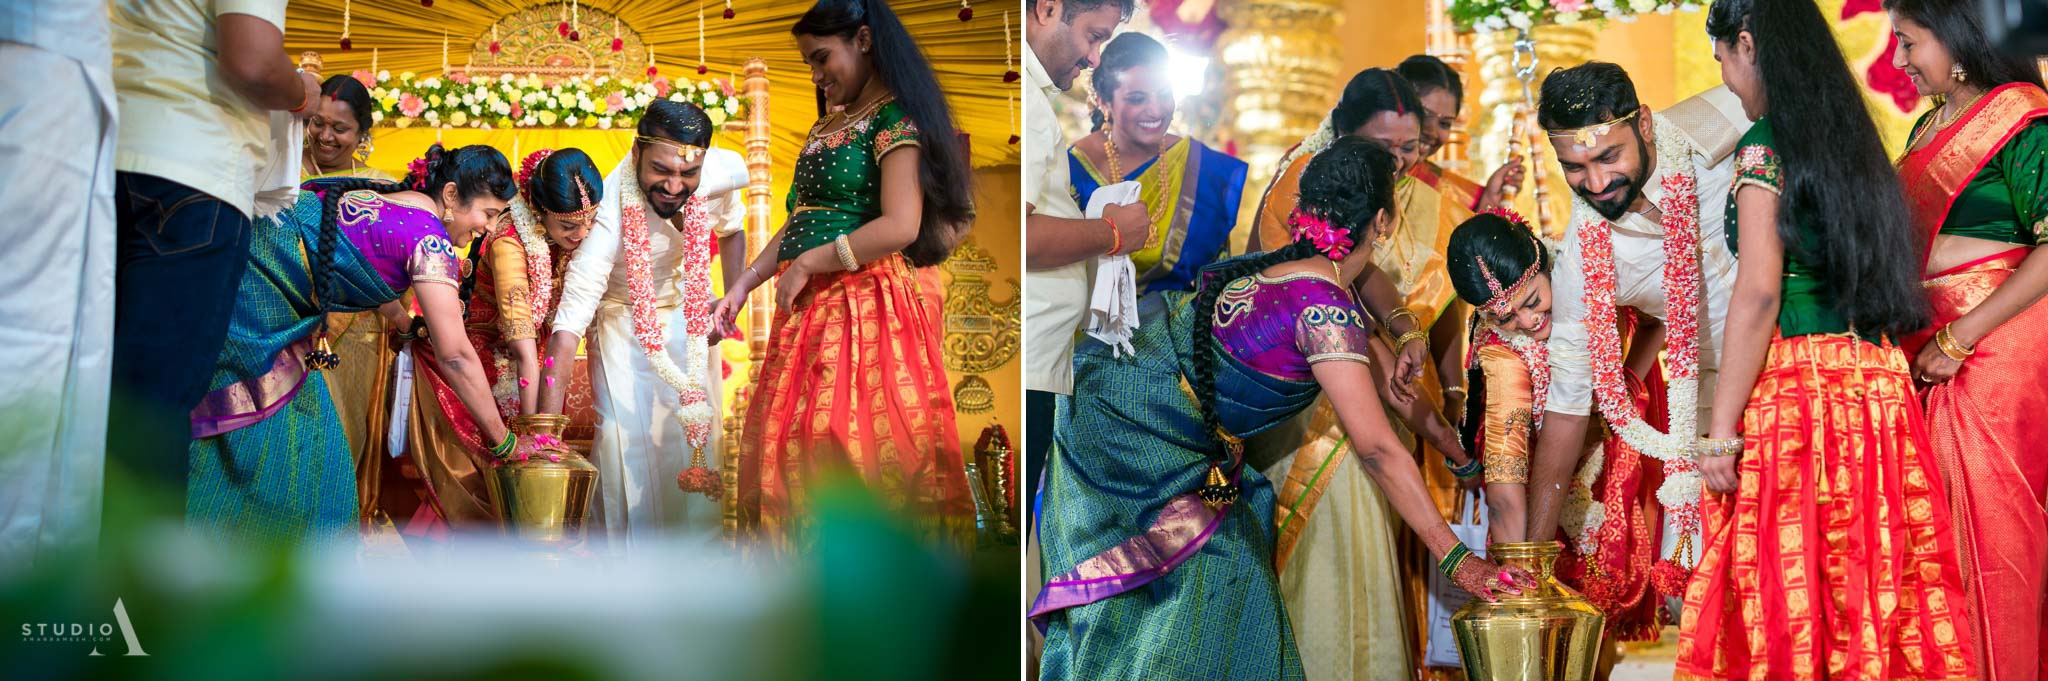 candid-wedding-photographer-chennai-29